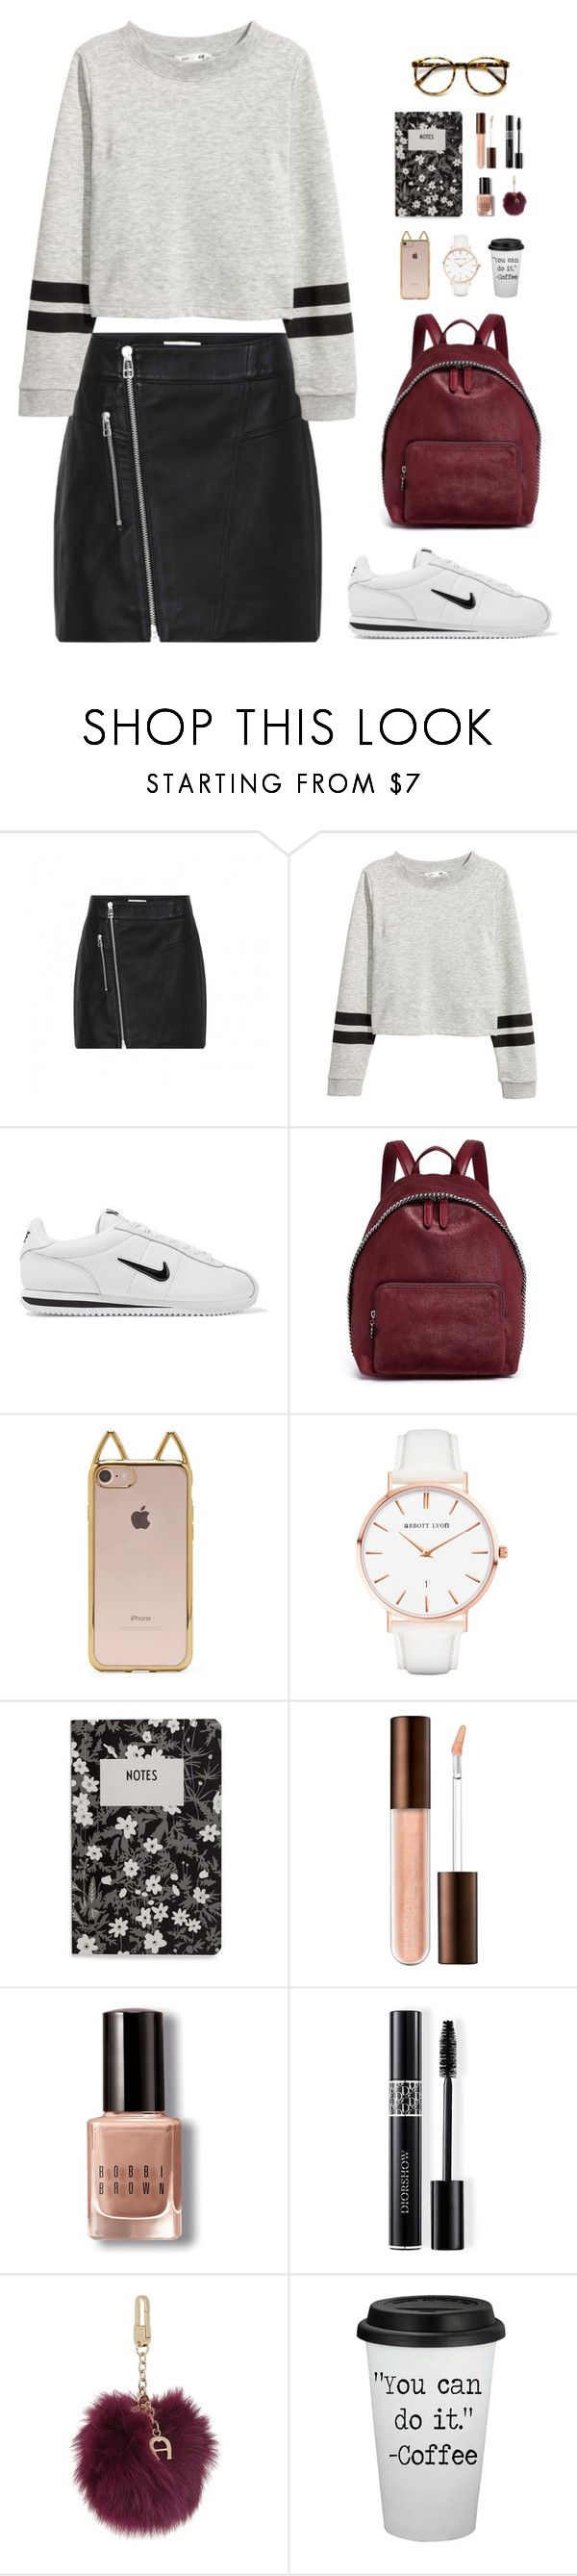 """First Day Back to Campus"" by elliejd ❤ liked on Polyvore featuring NIKE, STELLA McCARTNEY, Forever 21, Abbott Lyon, Design Letters, Bobbi Brown Cosmetics, Christian Dior, Etienne Aigner and BackToSchool"